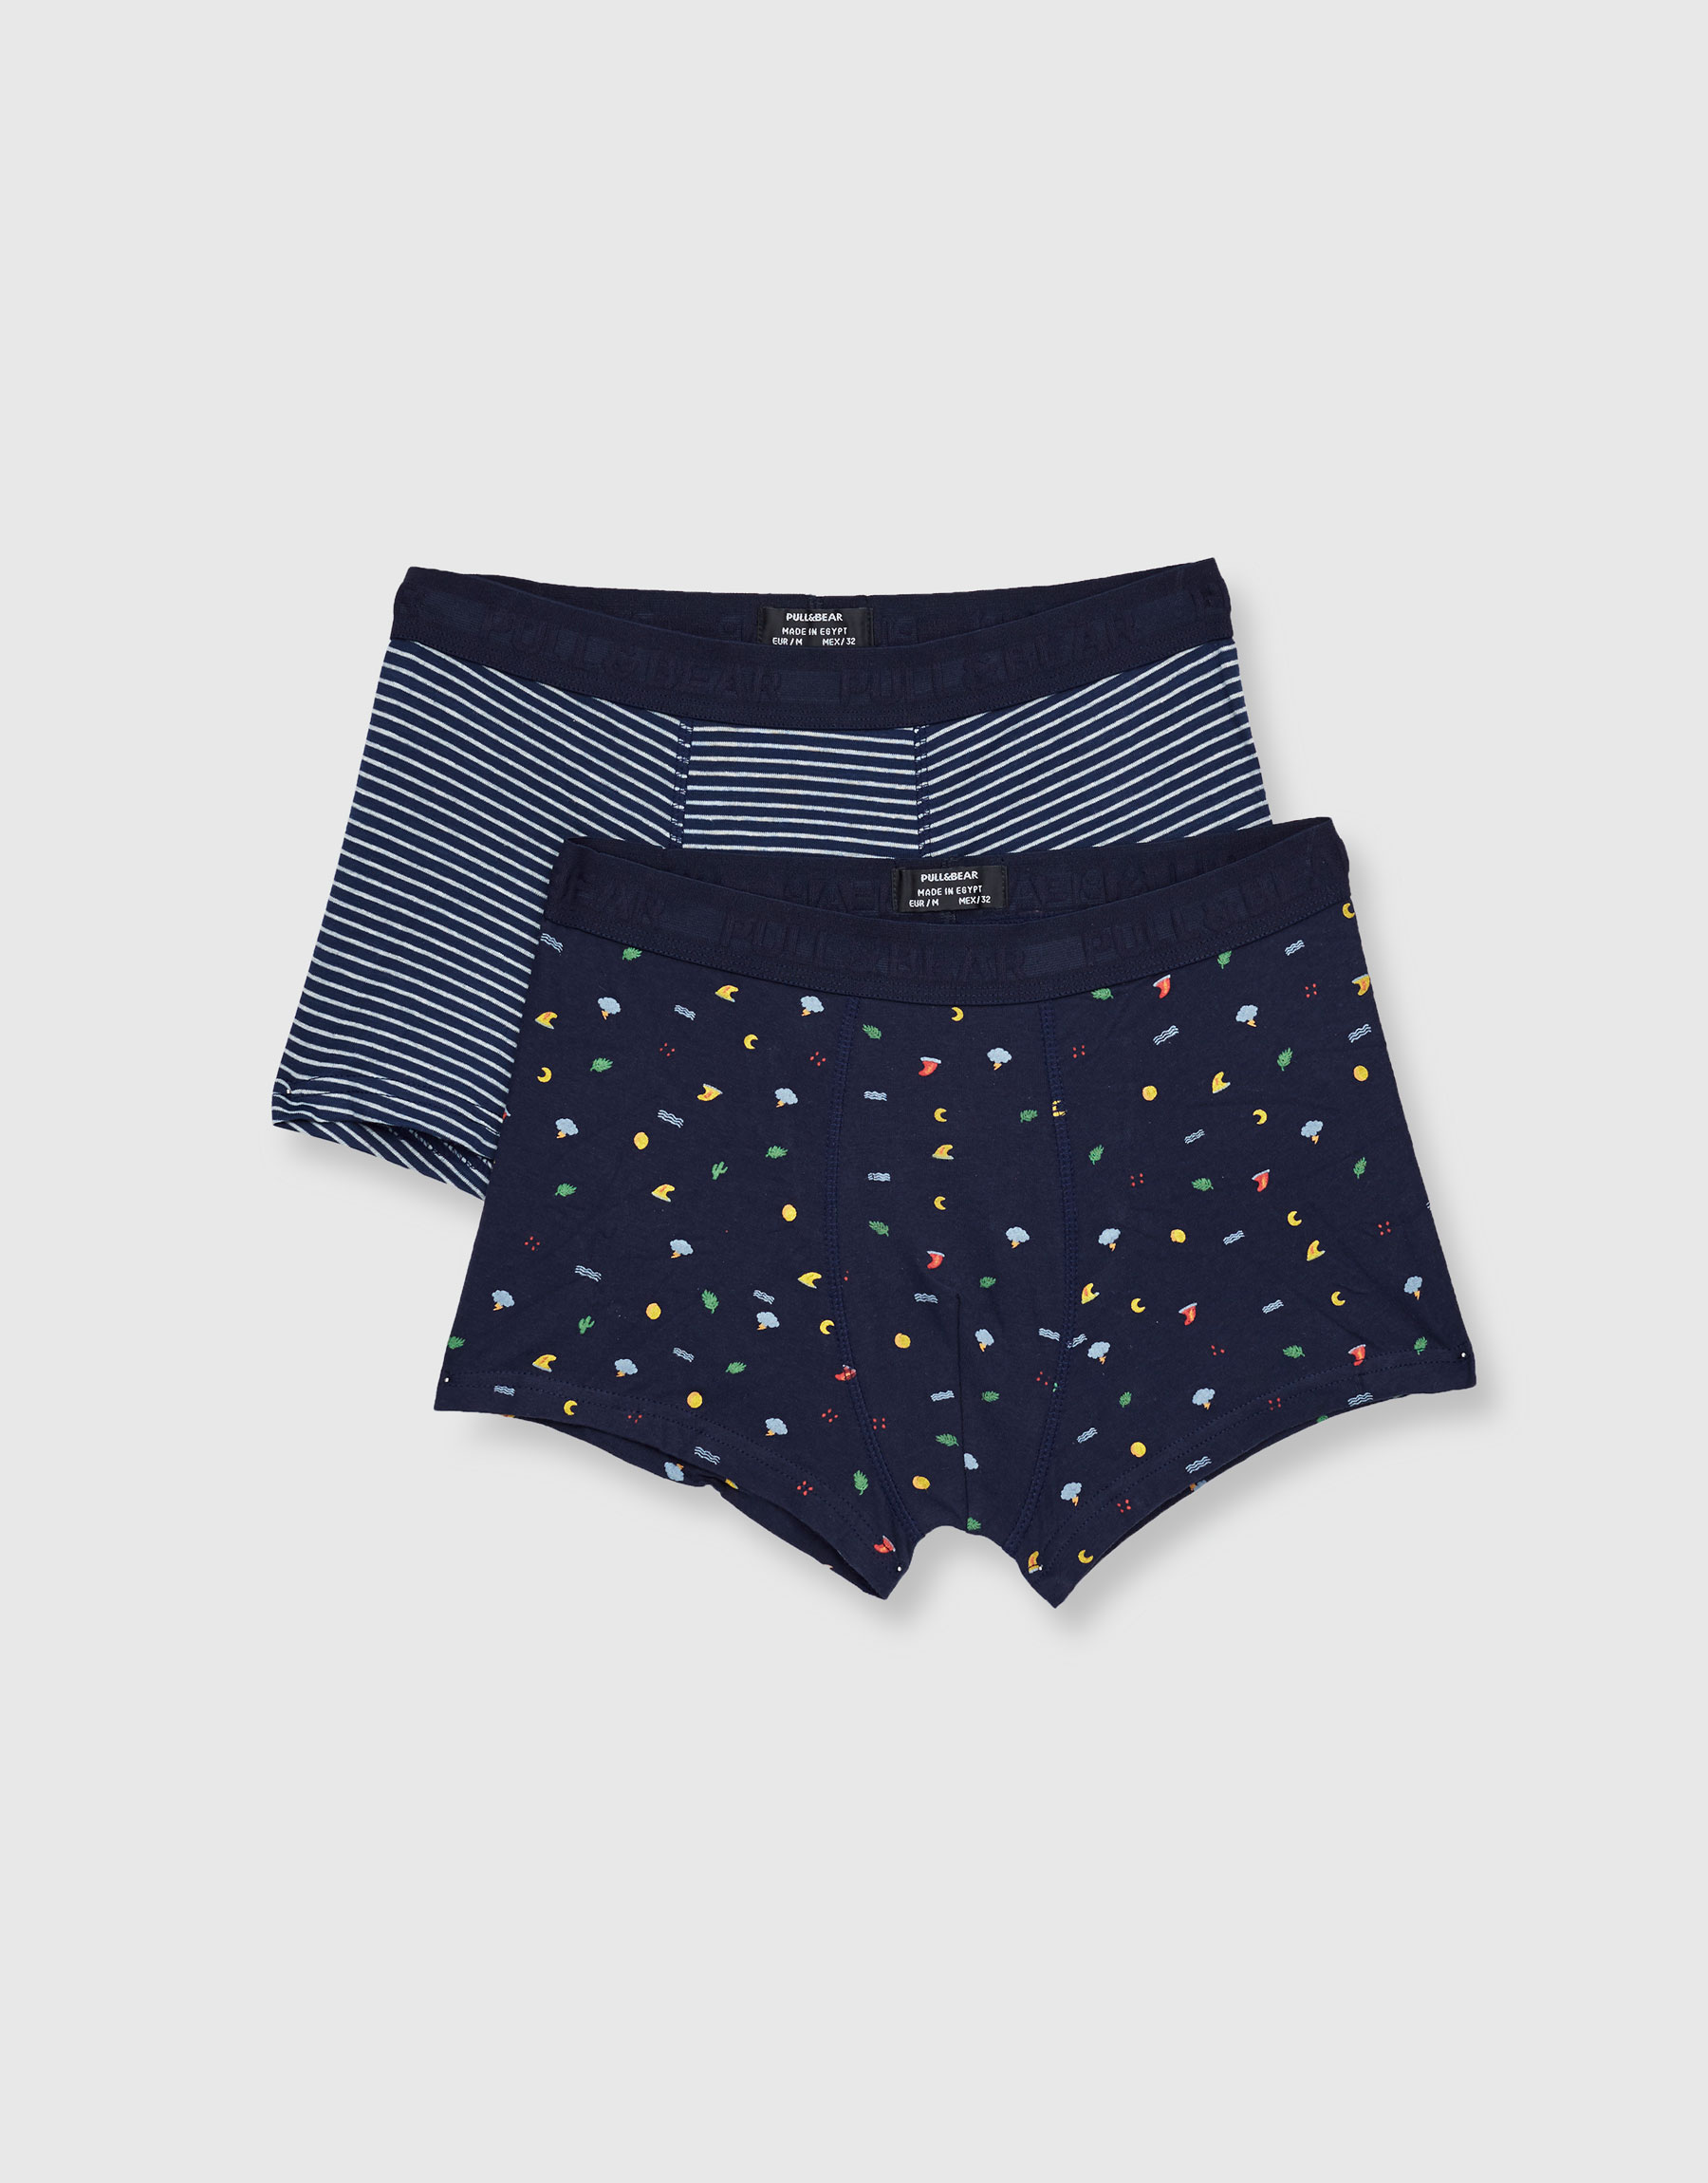 2-pack of nautical print boxers